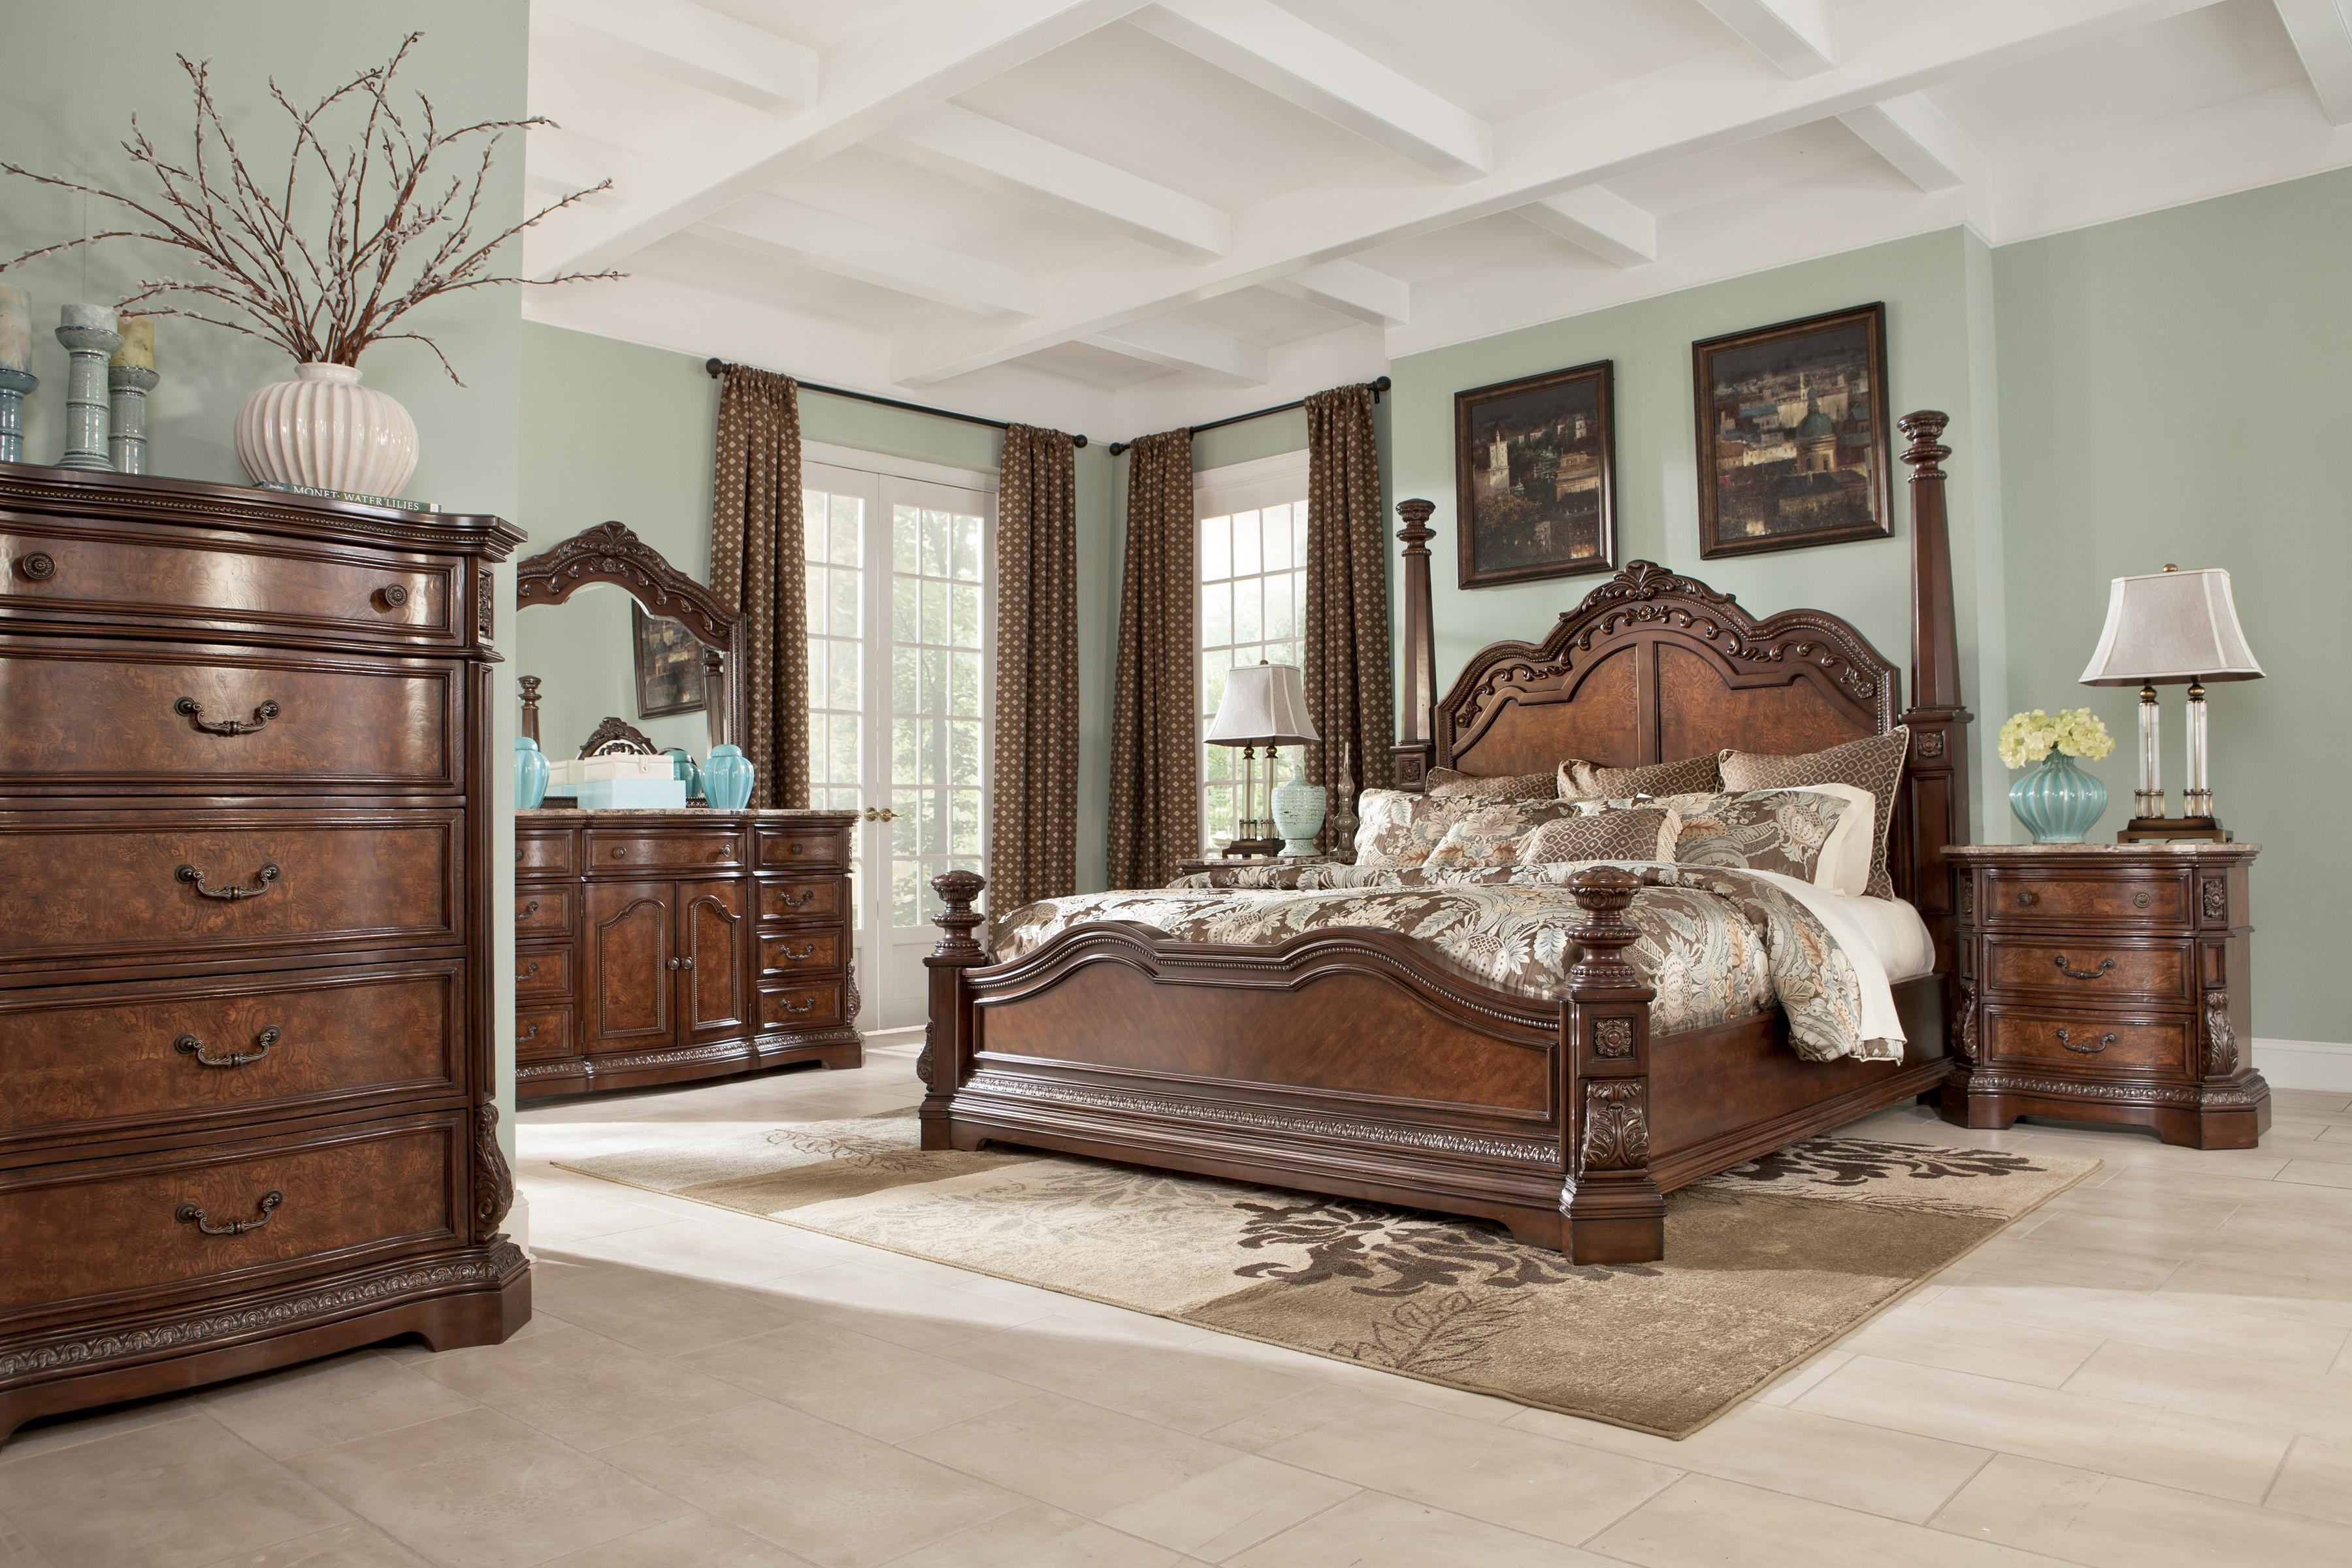 Marlo Bedroom Furniture Millennium Ledelle Queen Sleigh Headboard With Tufted Brown Faux